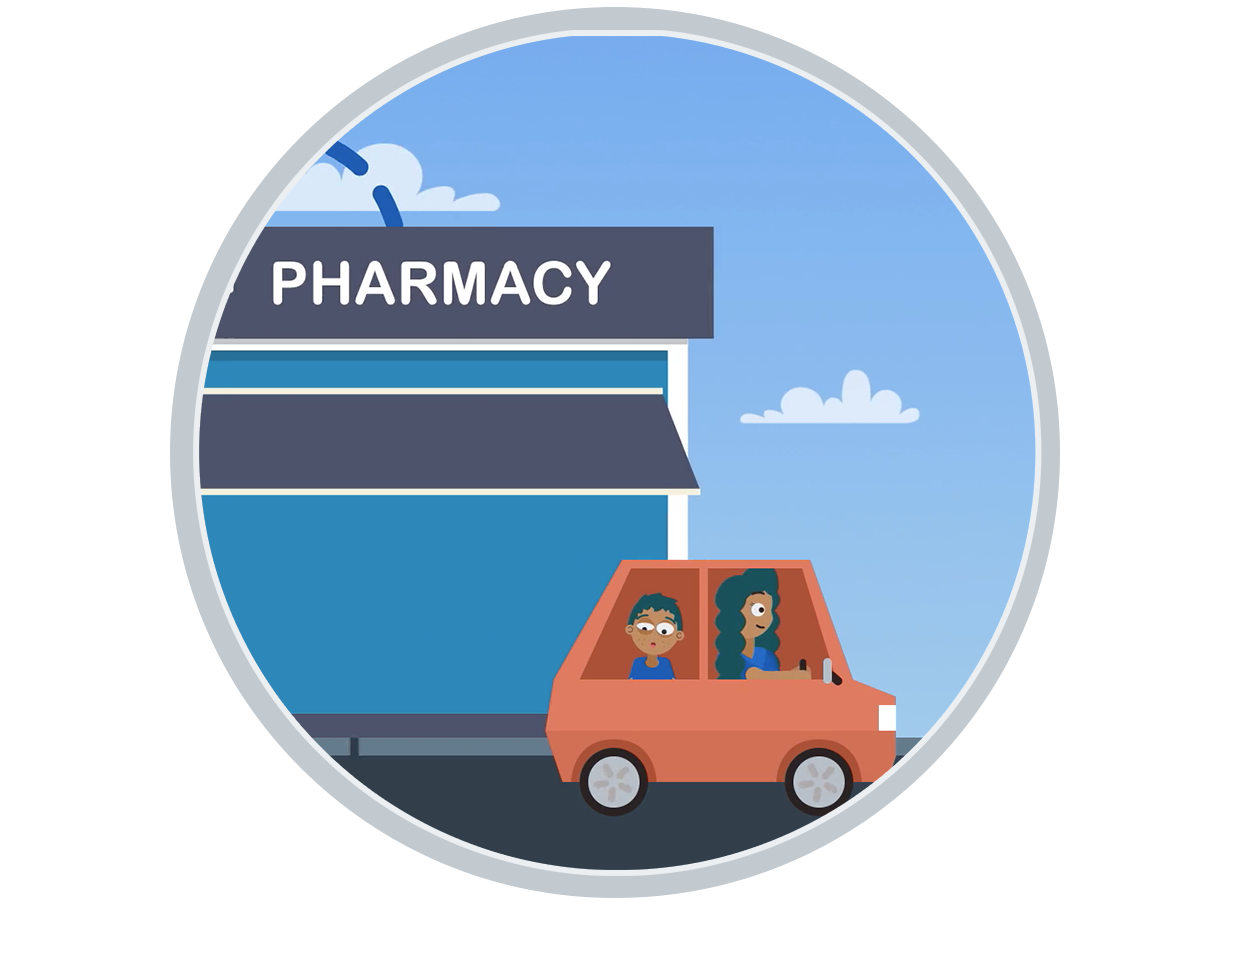 Icon-going-home-pharmacy-child.png